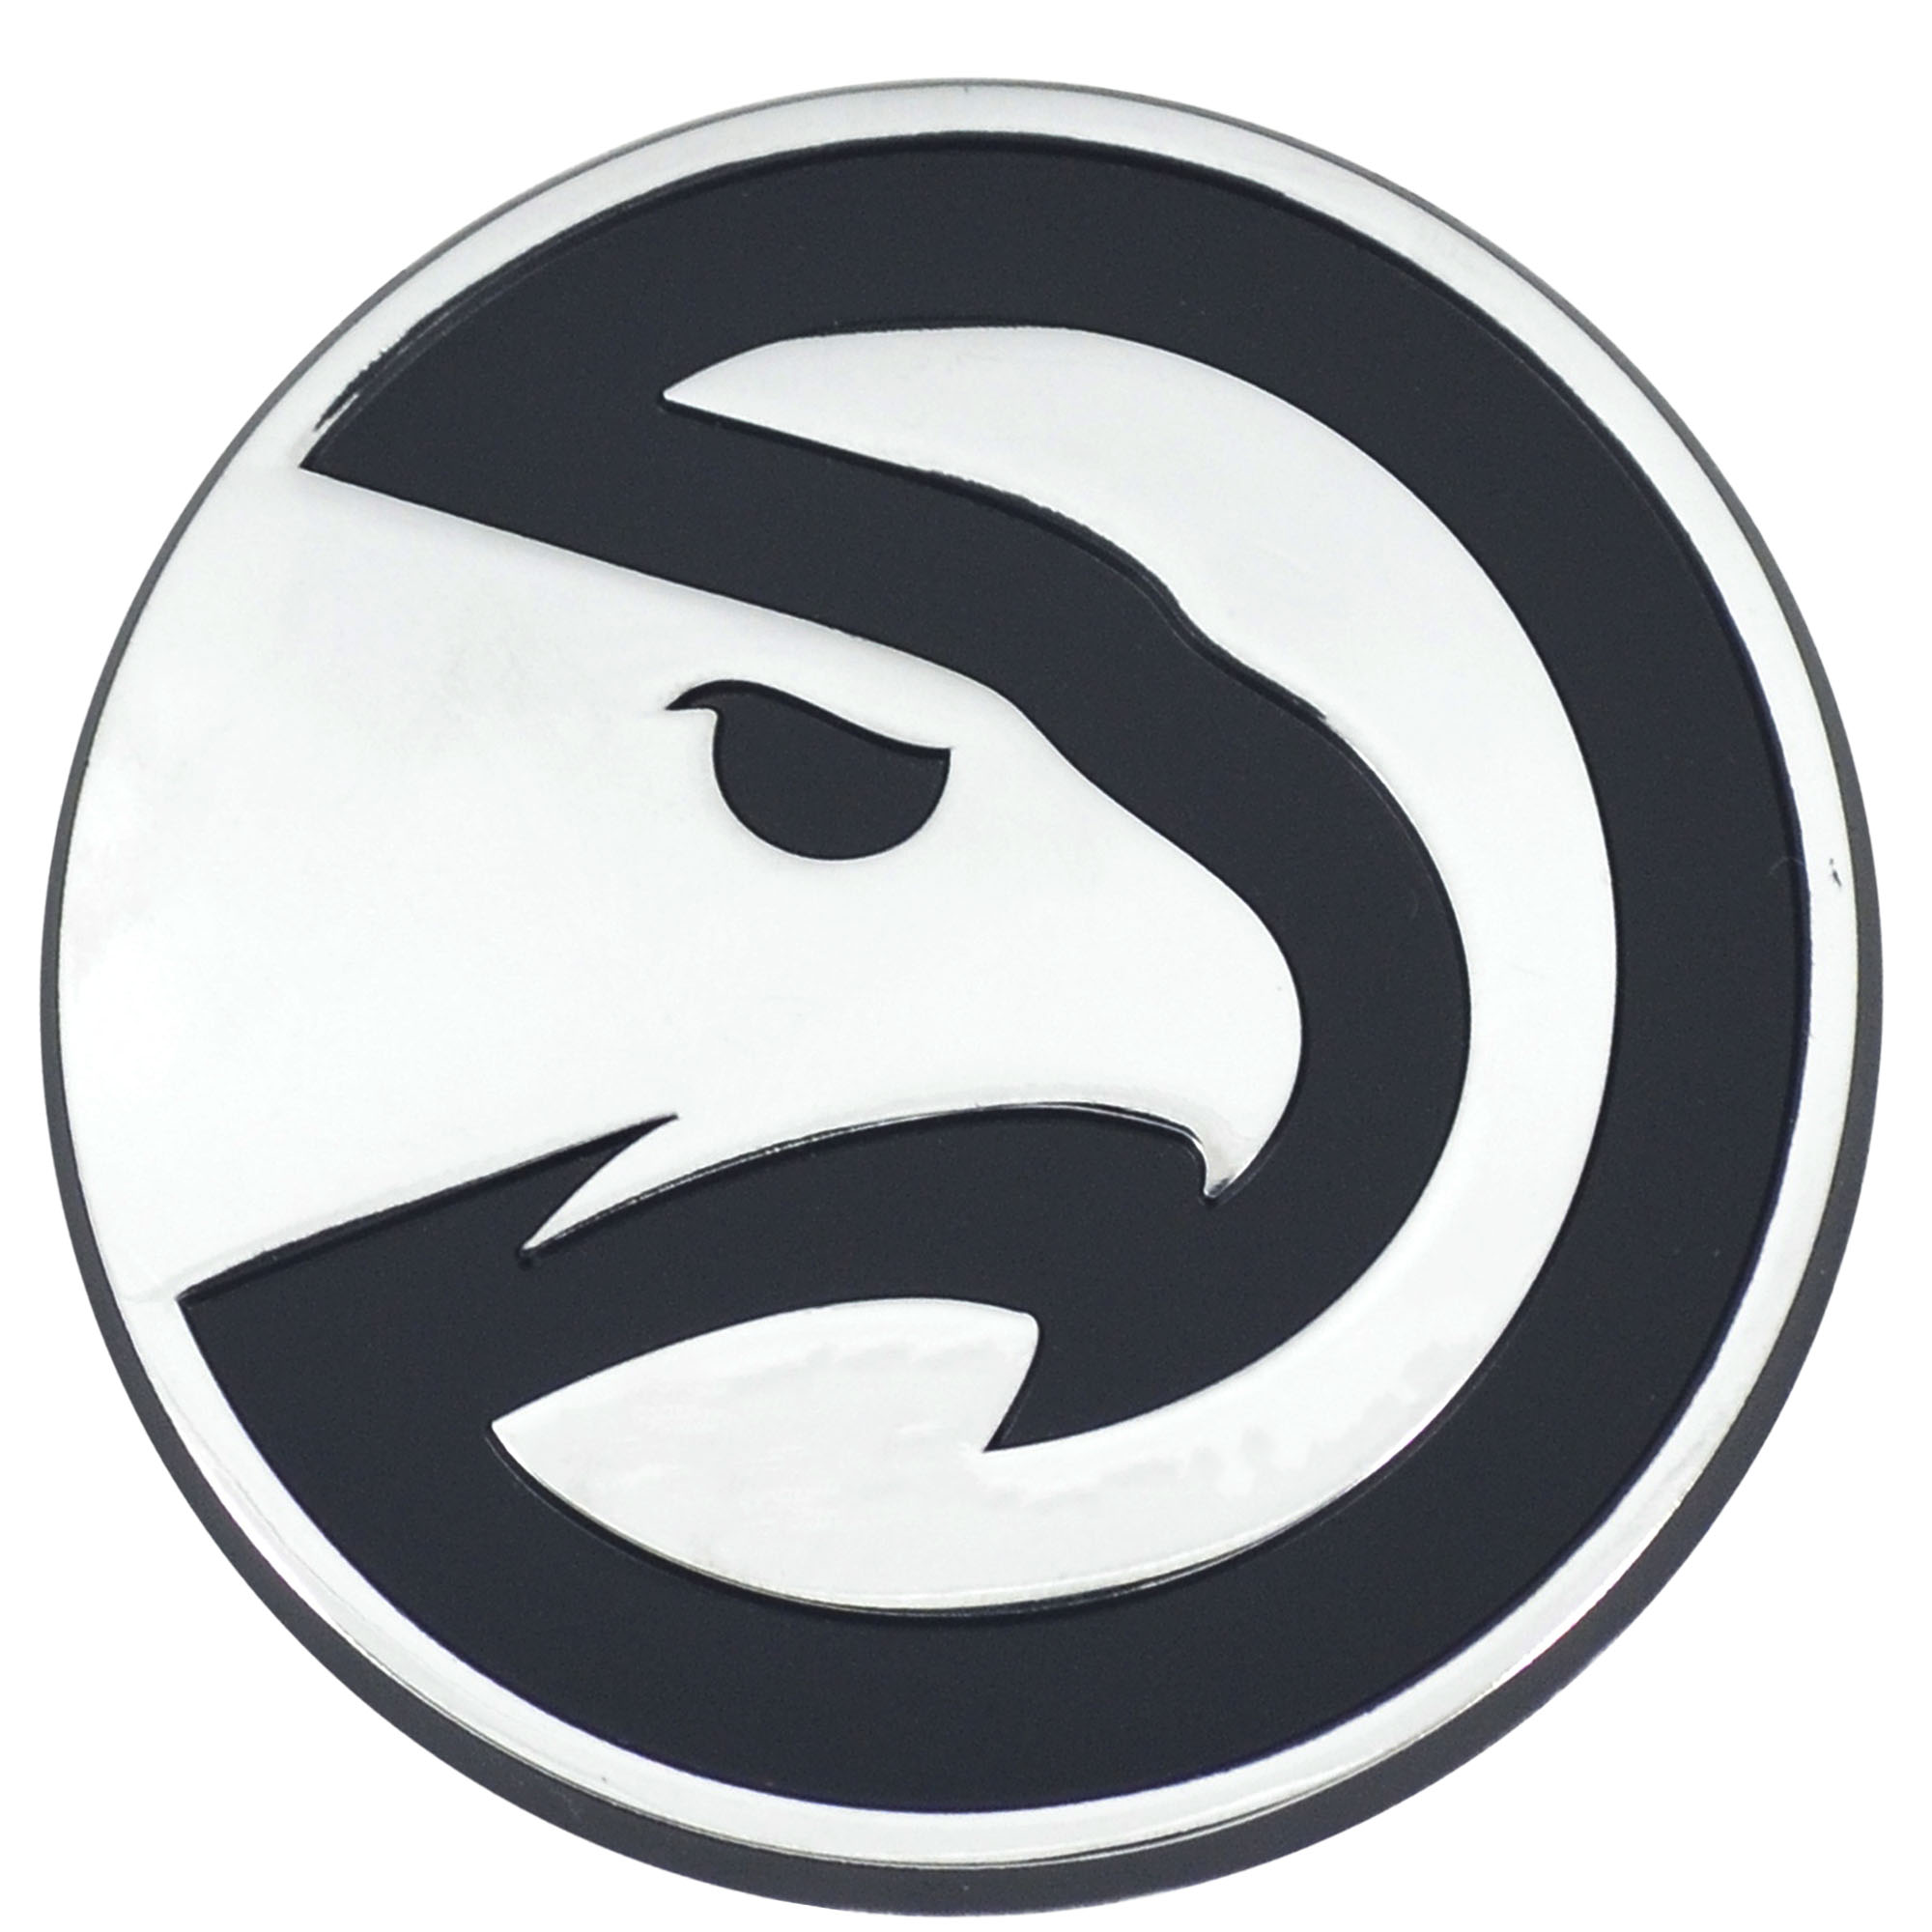 Set of 2 NBA Atlanta Hawks Chrome Emblem Automotive Stick-On Car Decal